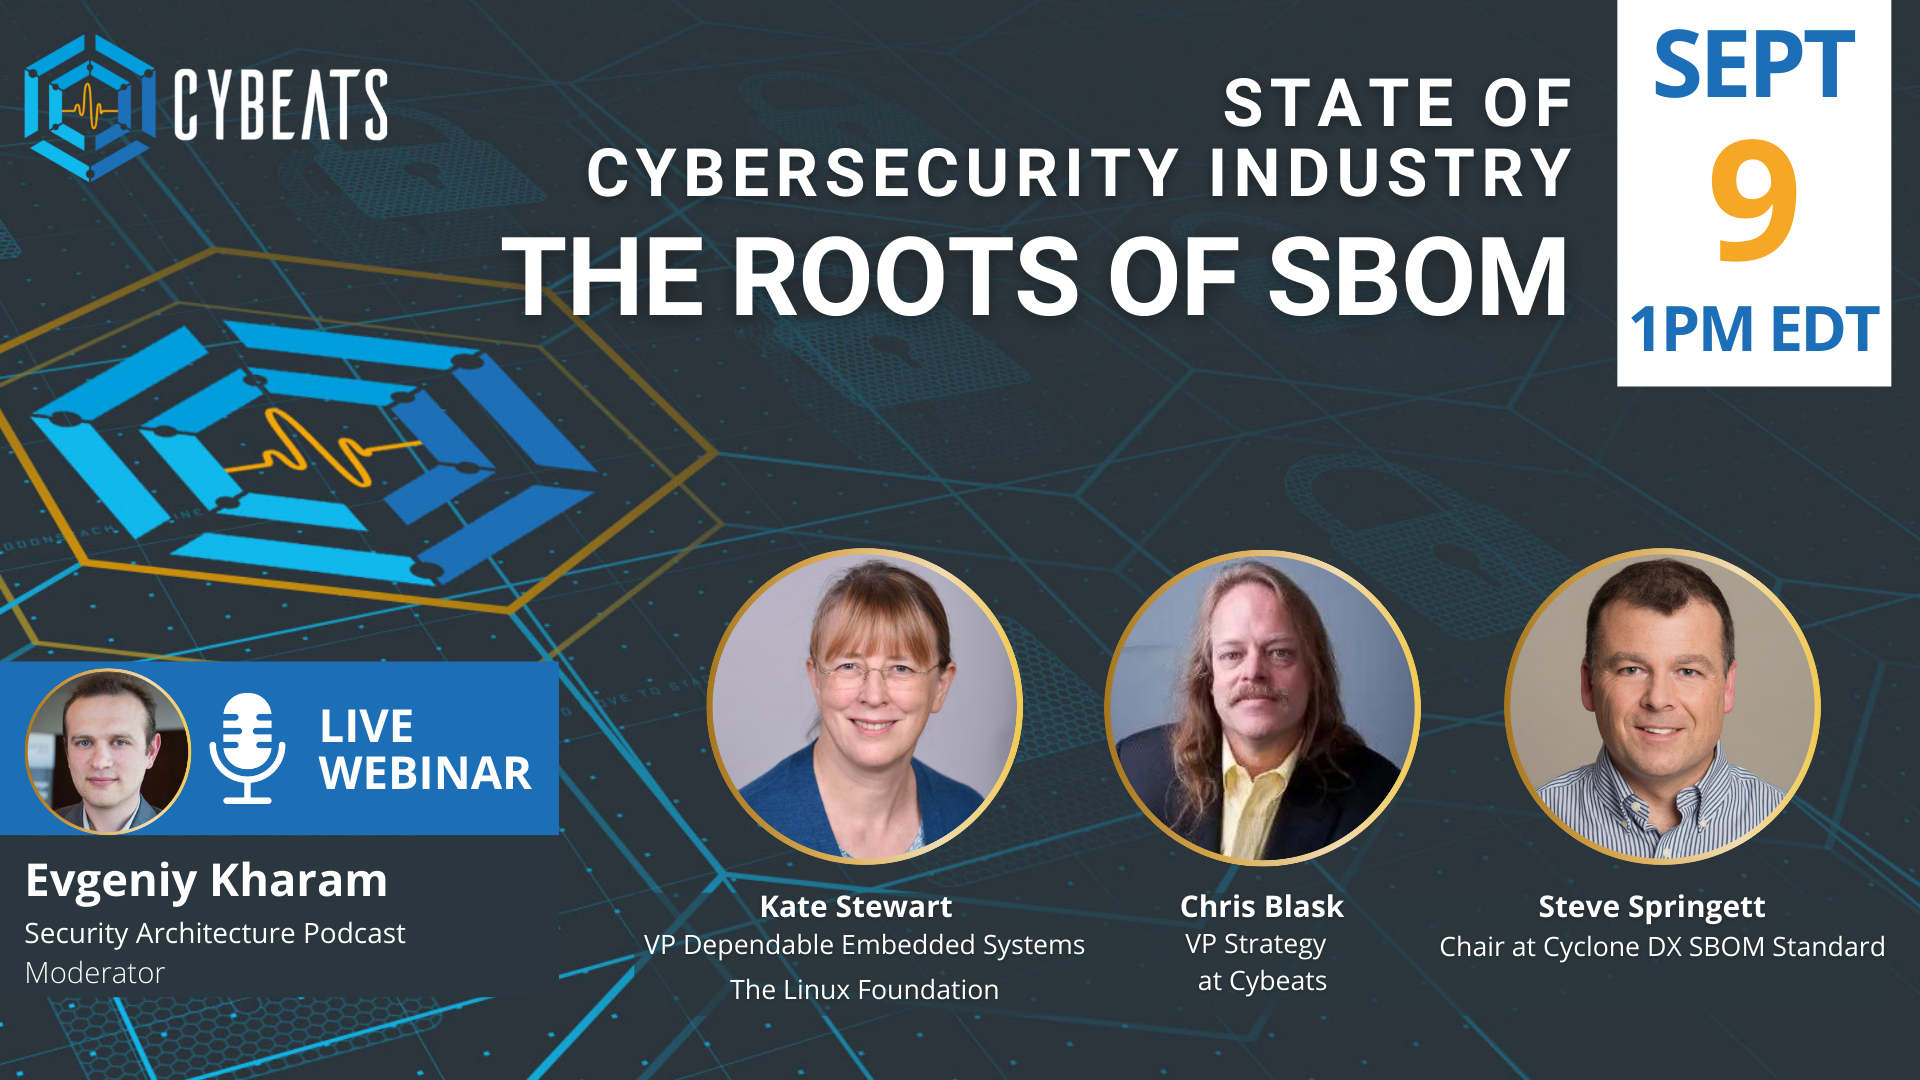 Relay to Host the 'Roots of SBOM' for their Second LIVE Webinar on the State of Cybersecurity Industry